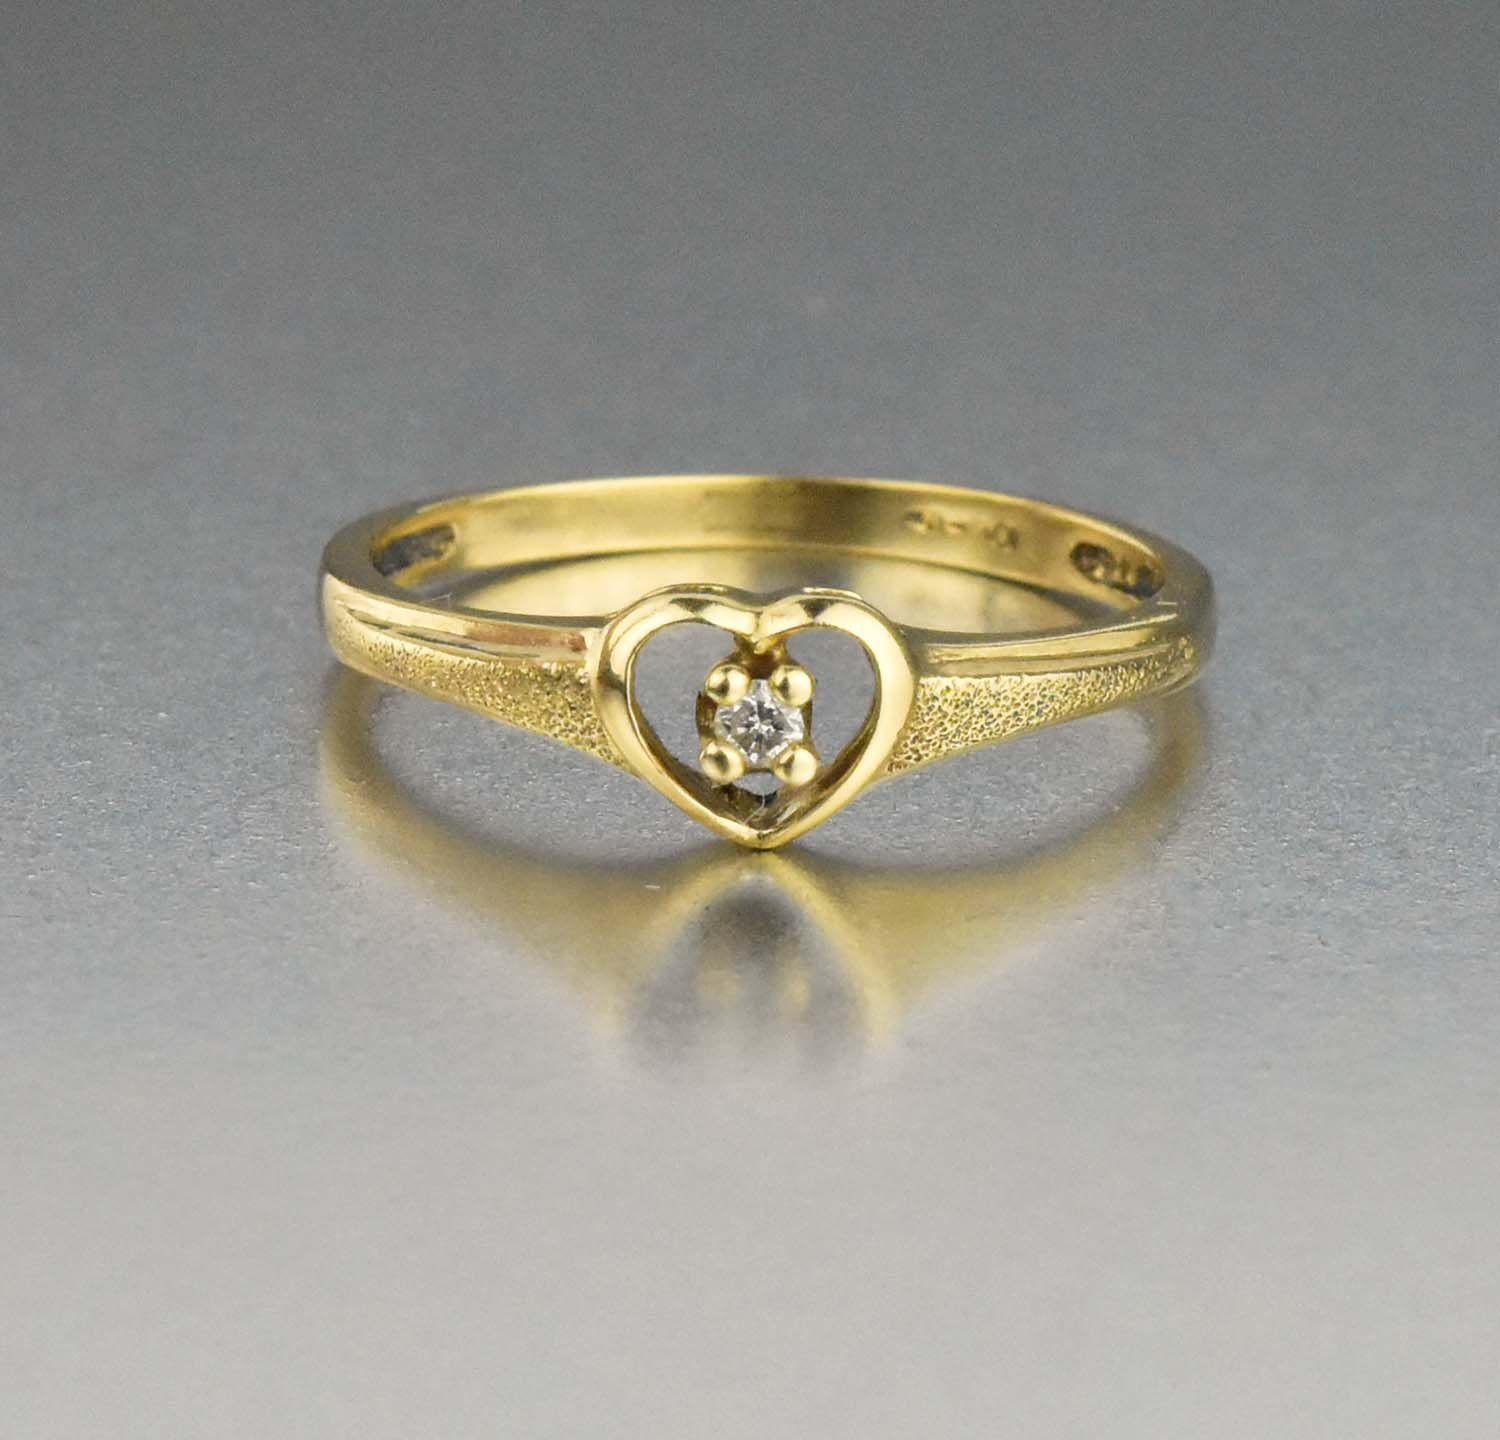 Best Friends Vintage Diamond Heart Ring 10k Gold Heart Diamond Gold Vintage Intage Ring Gate Shop Gold Ring Designs Diamond Heart Ring Antique Jewelry